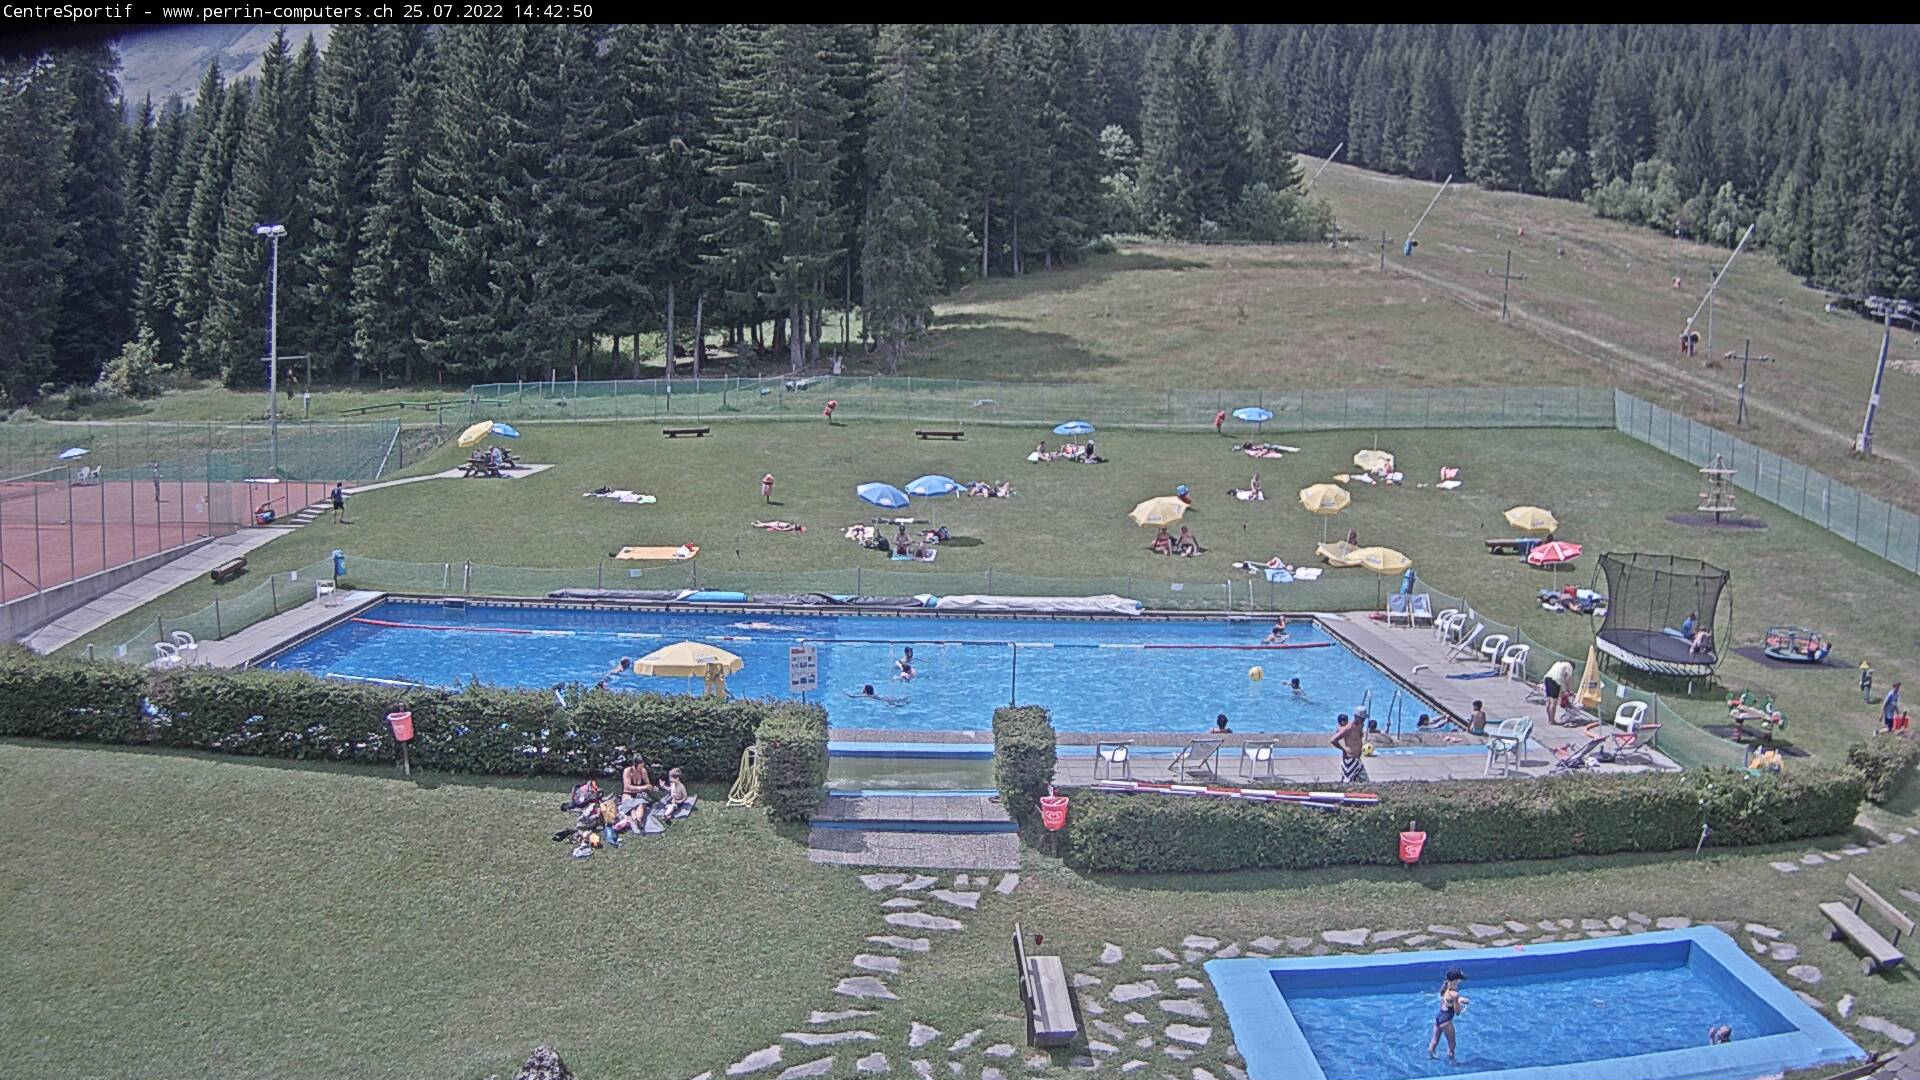 Webcam Morgins, centre sportif